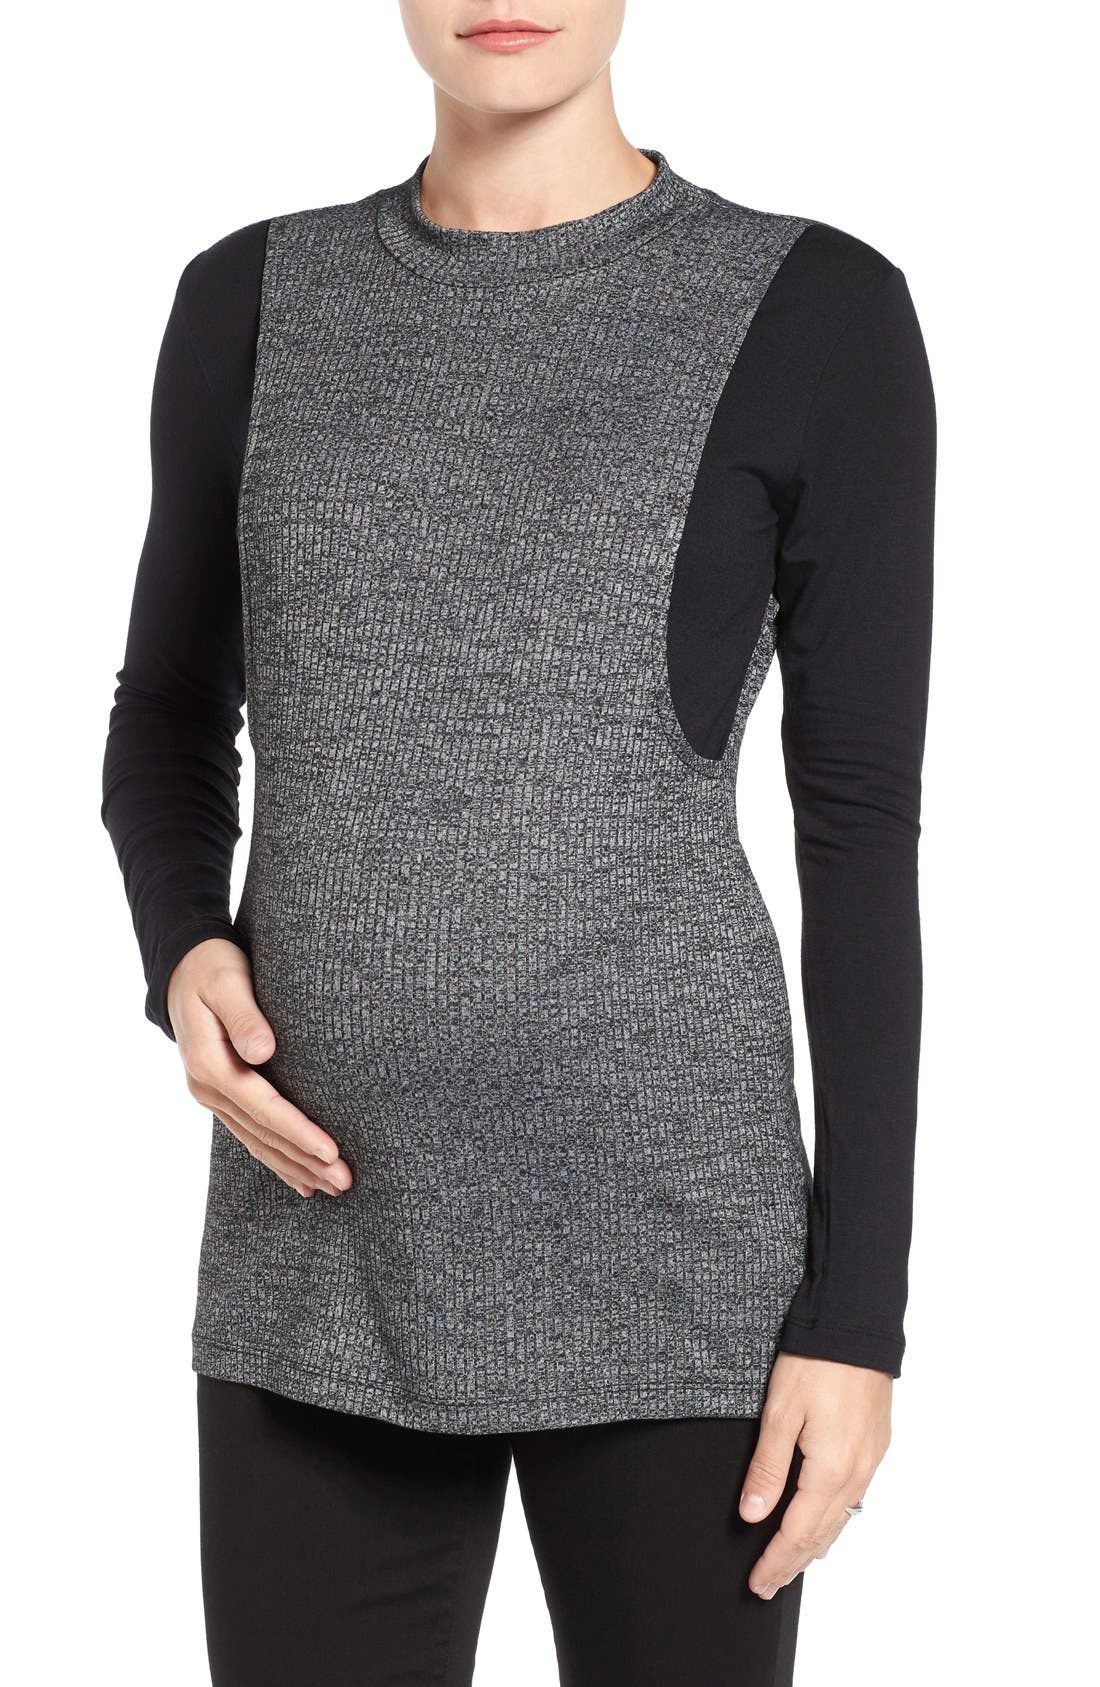 'Brie' Colorblock Maternity/Nursing Sweater,                         Main,                         color, Charcoal/ Black